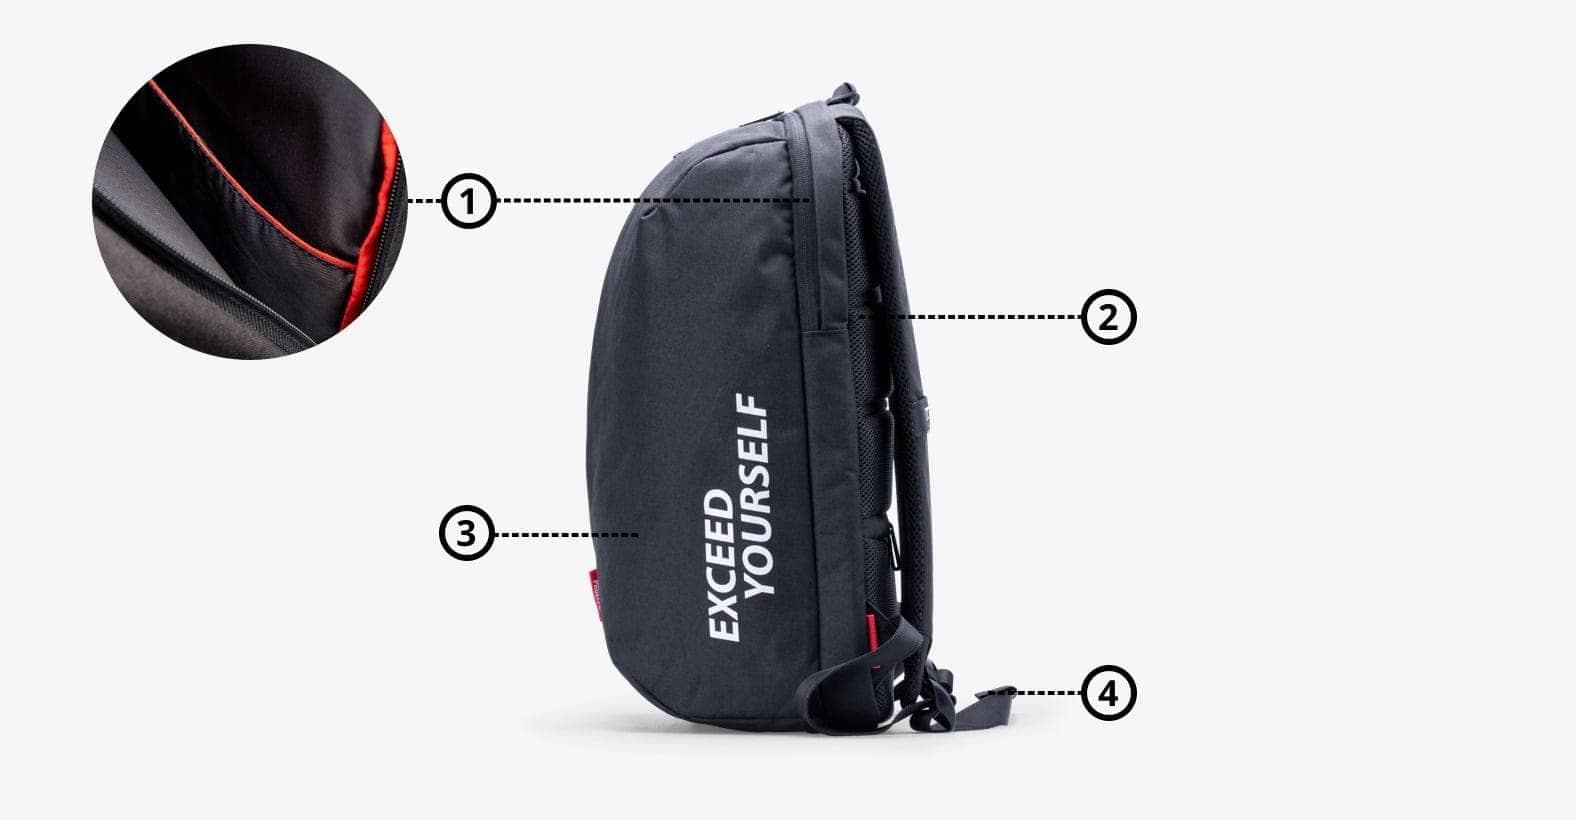 The Sprint Backpack